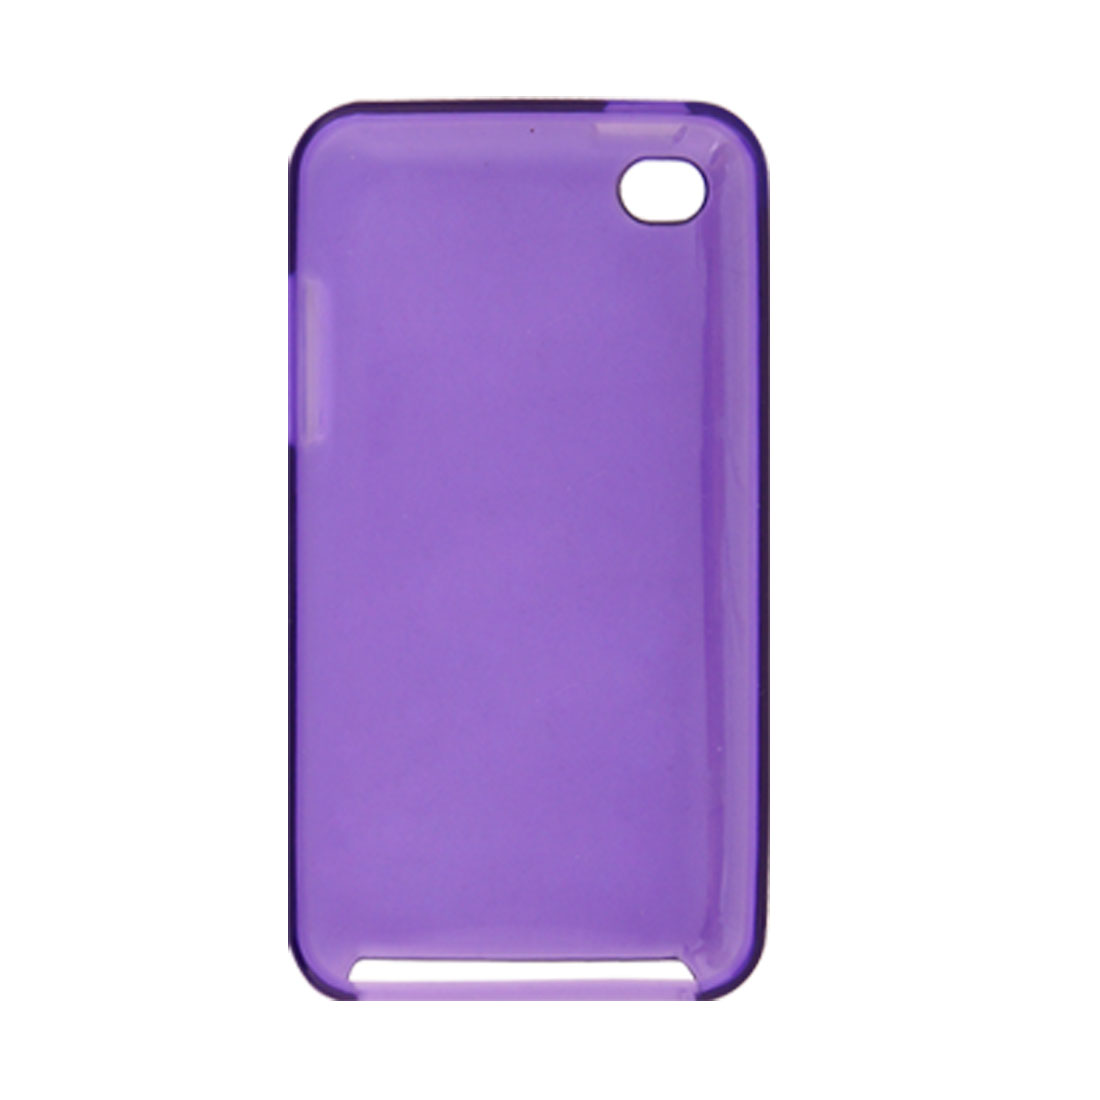 Soft Plastic Purple Skin Back Cover Case for iPod Touch 4G